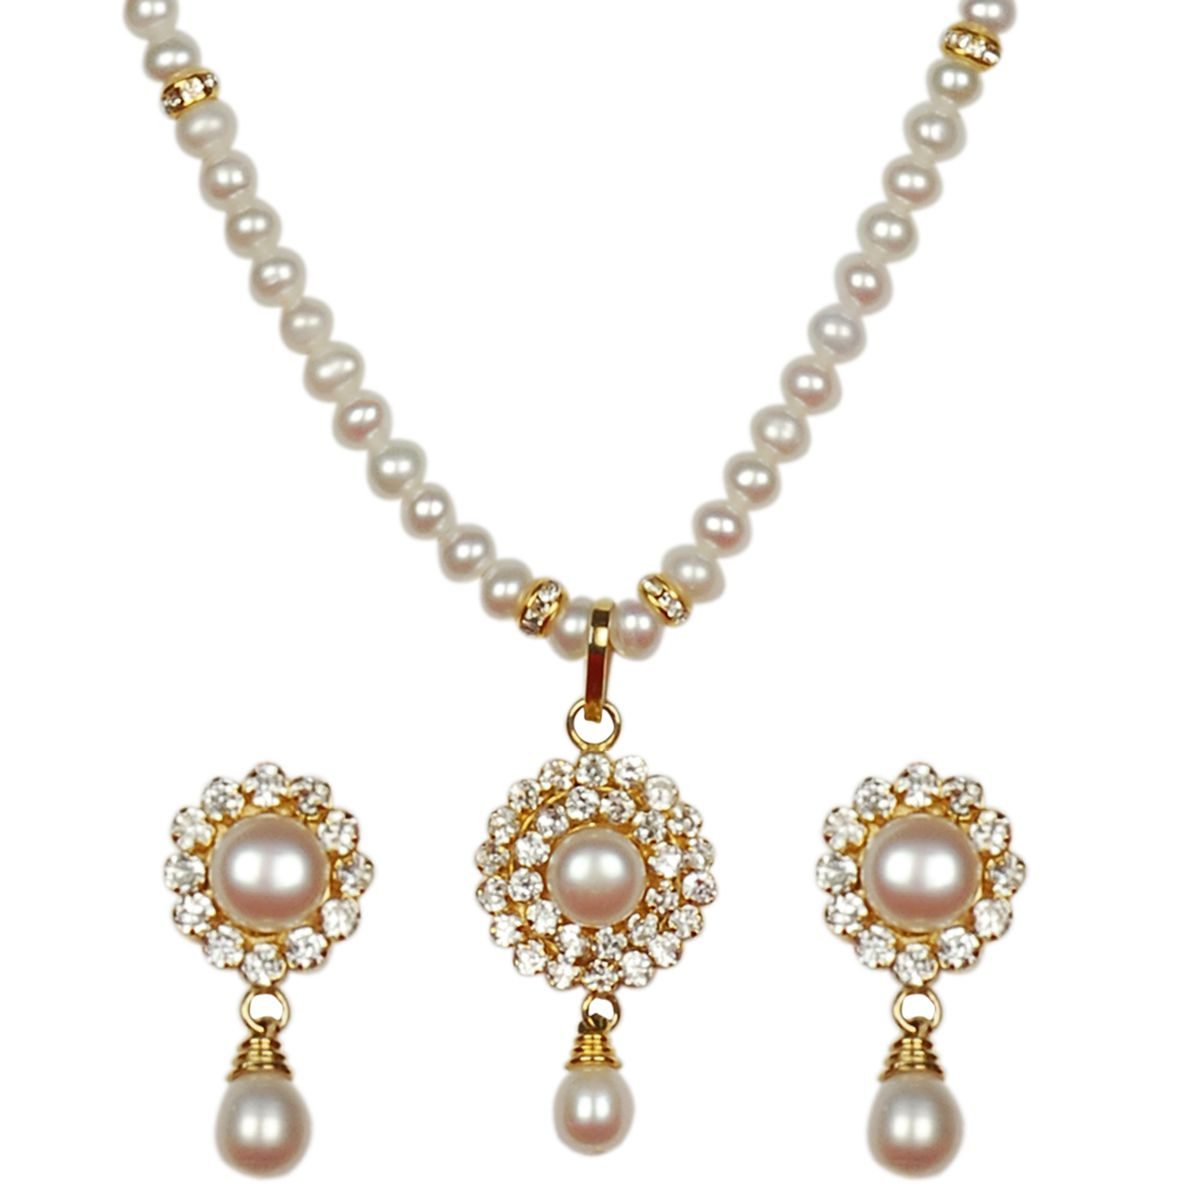 SINGLE STRING PEARL SET WITH ROUND PENDENT